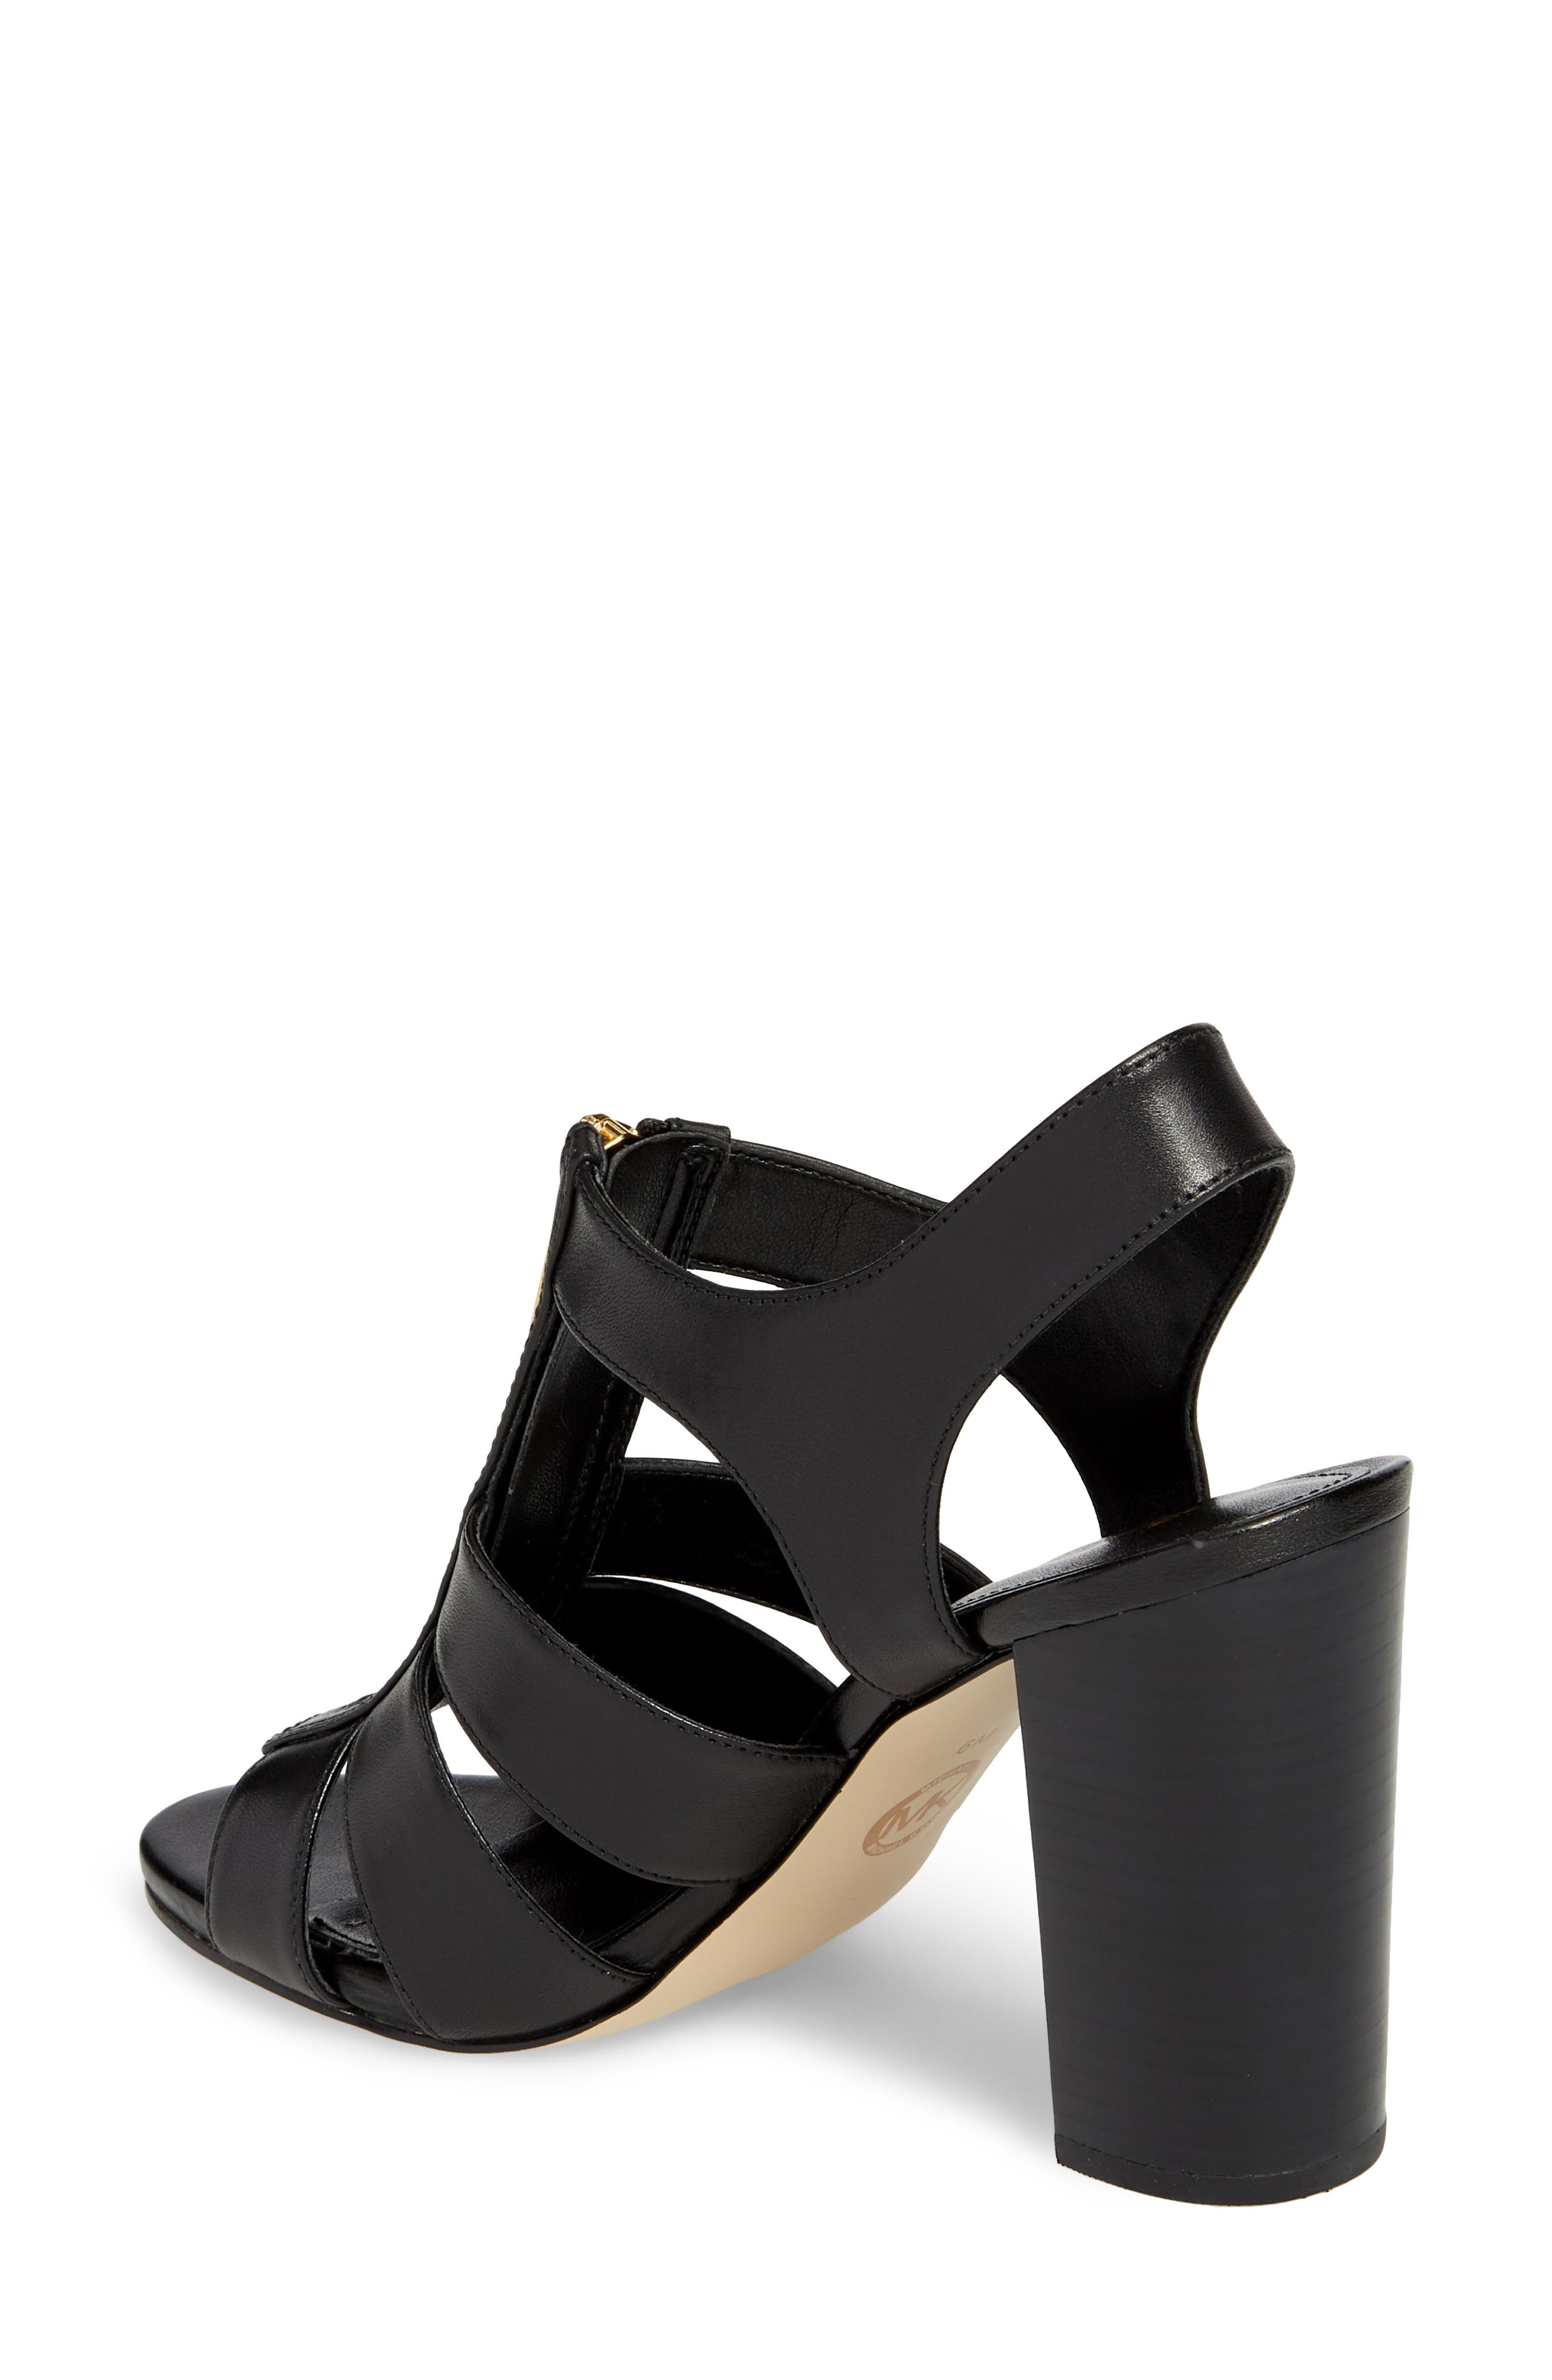 Damita Sandal,                             Alternate thumbnail 2, color,                             001